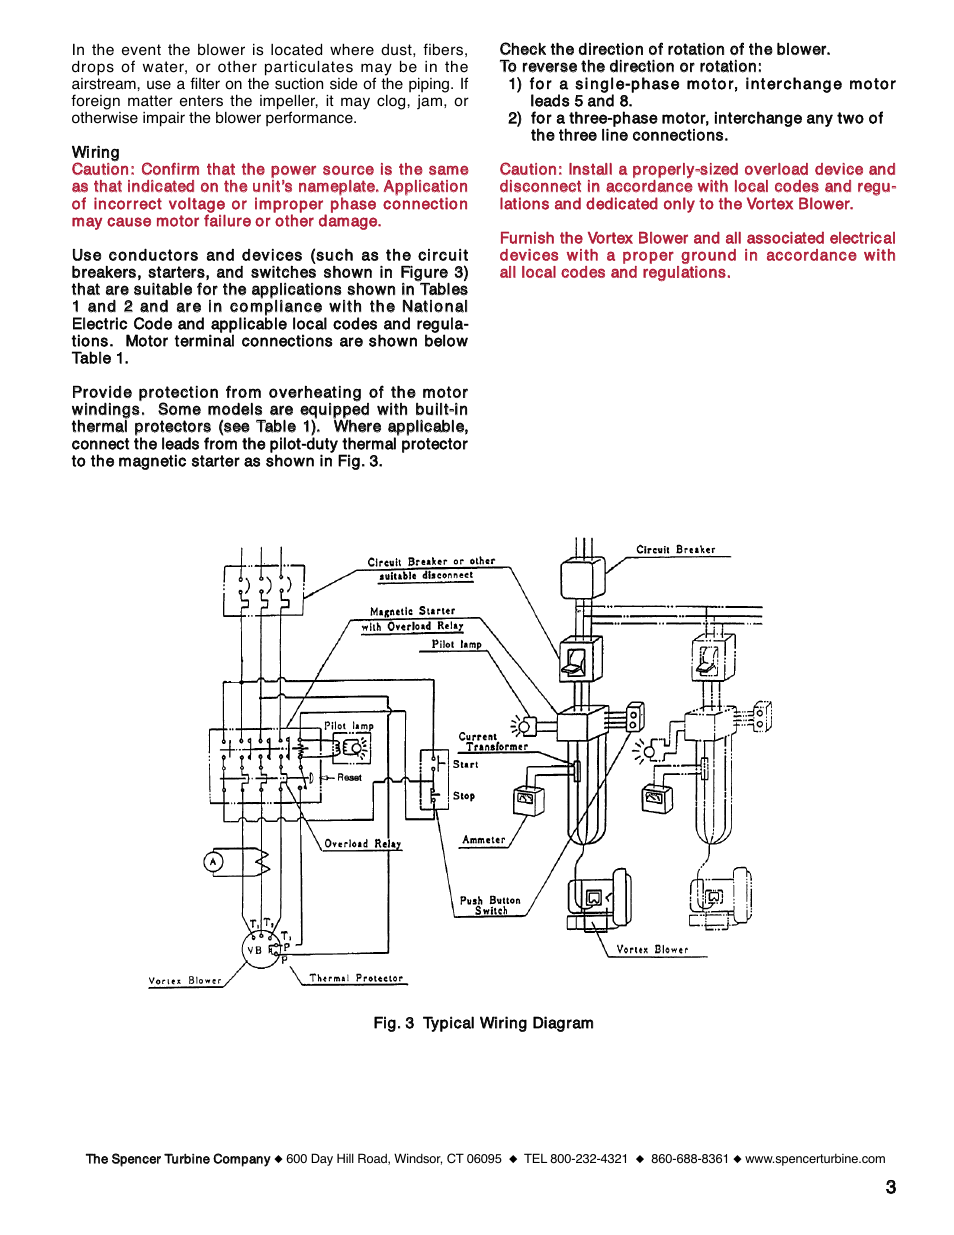 Spencer Motor Wiring Diagram Reinvent Your Ac Blower Vb055 Vortex Regenerative Blowers User Manual Page 3 20 Rh Manualsdir Com 110 220